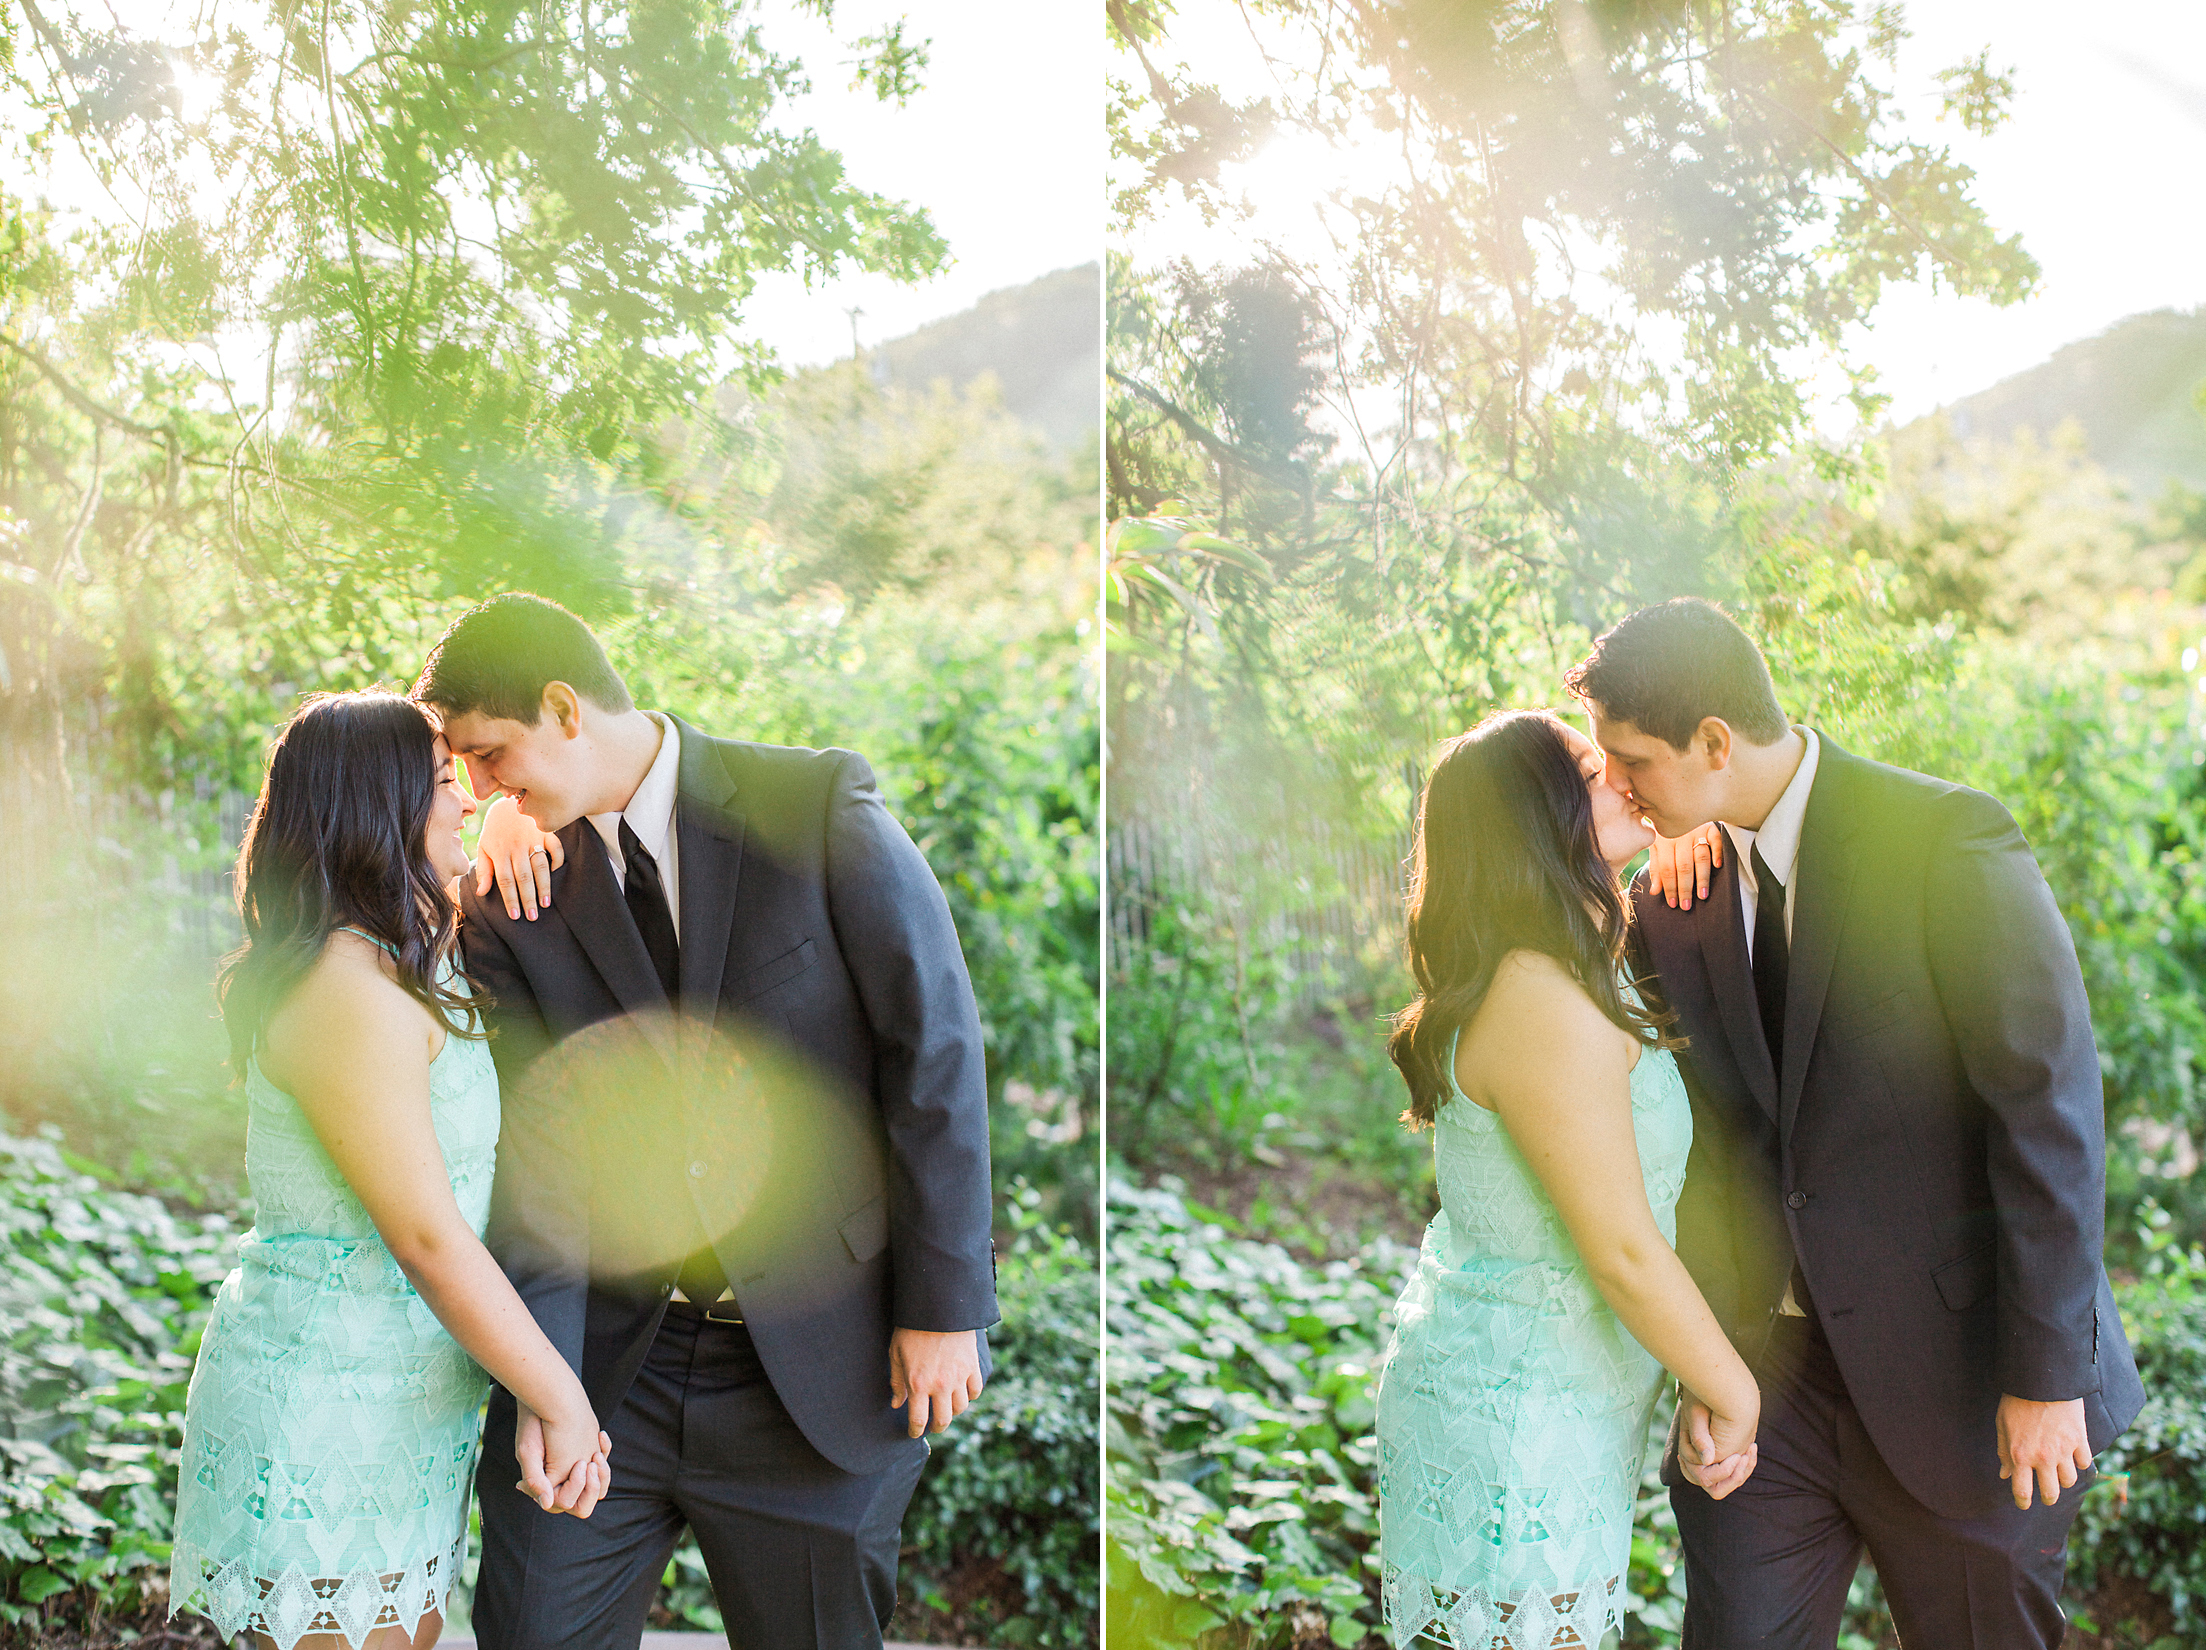 Proposal_bayarea_sanjose_wedding_engagement_nicolequiroz_nicole_quiroz_ring_11.jpg